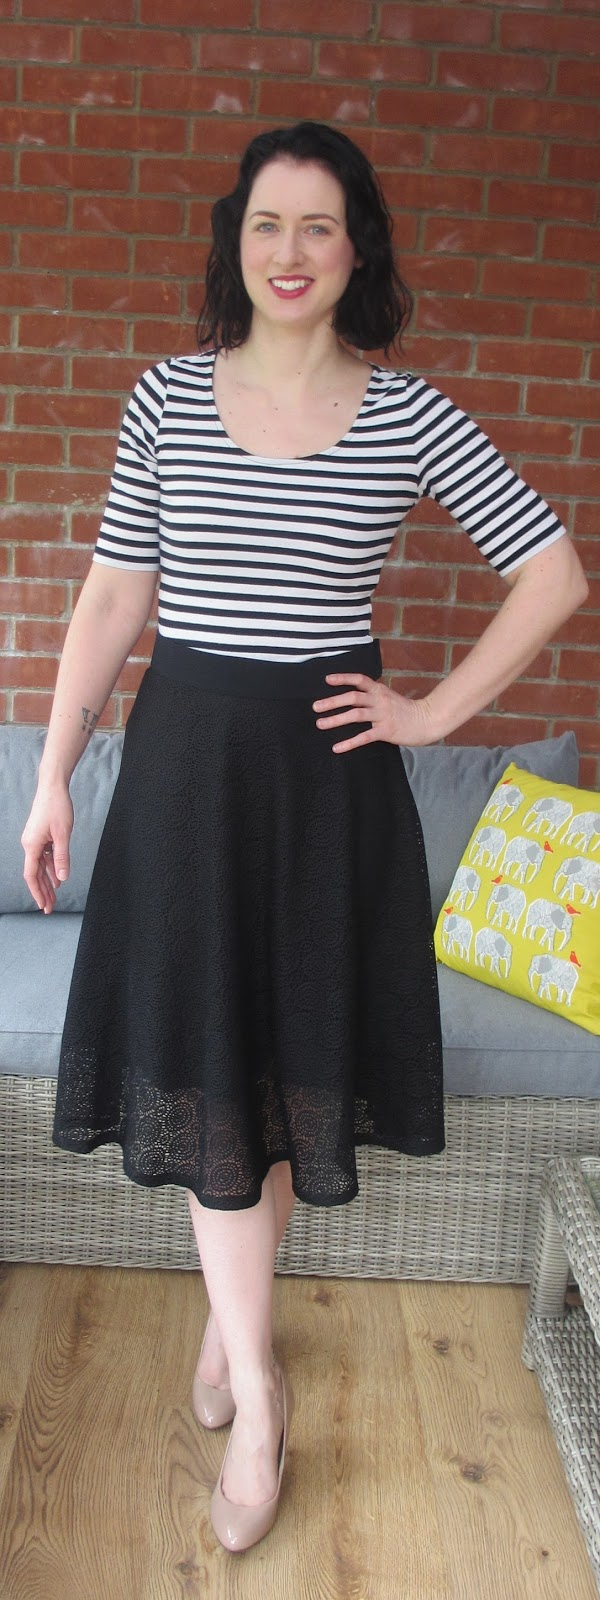 Crafty Clyde: Mimi G Copy - Black Lace Circle Skirt